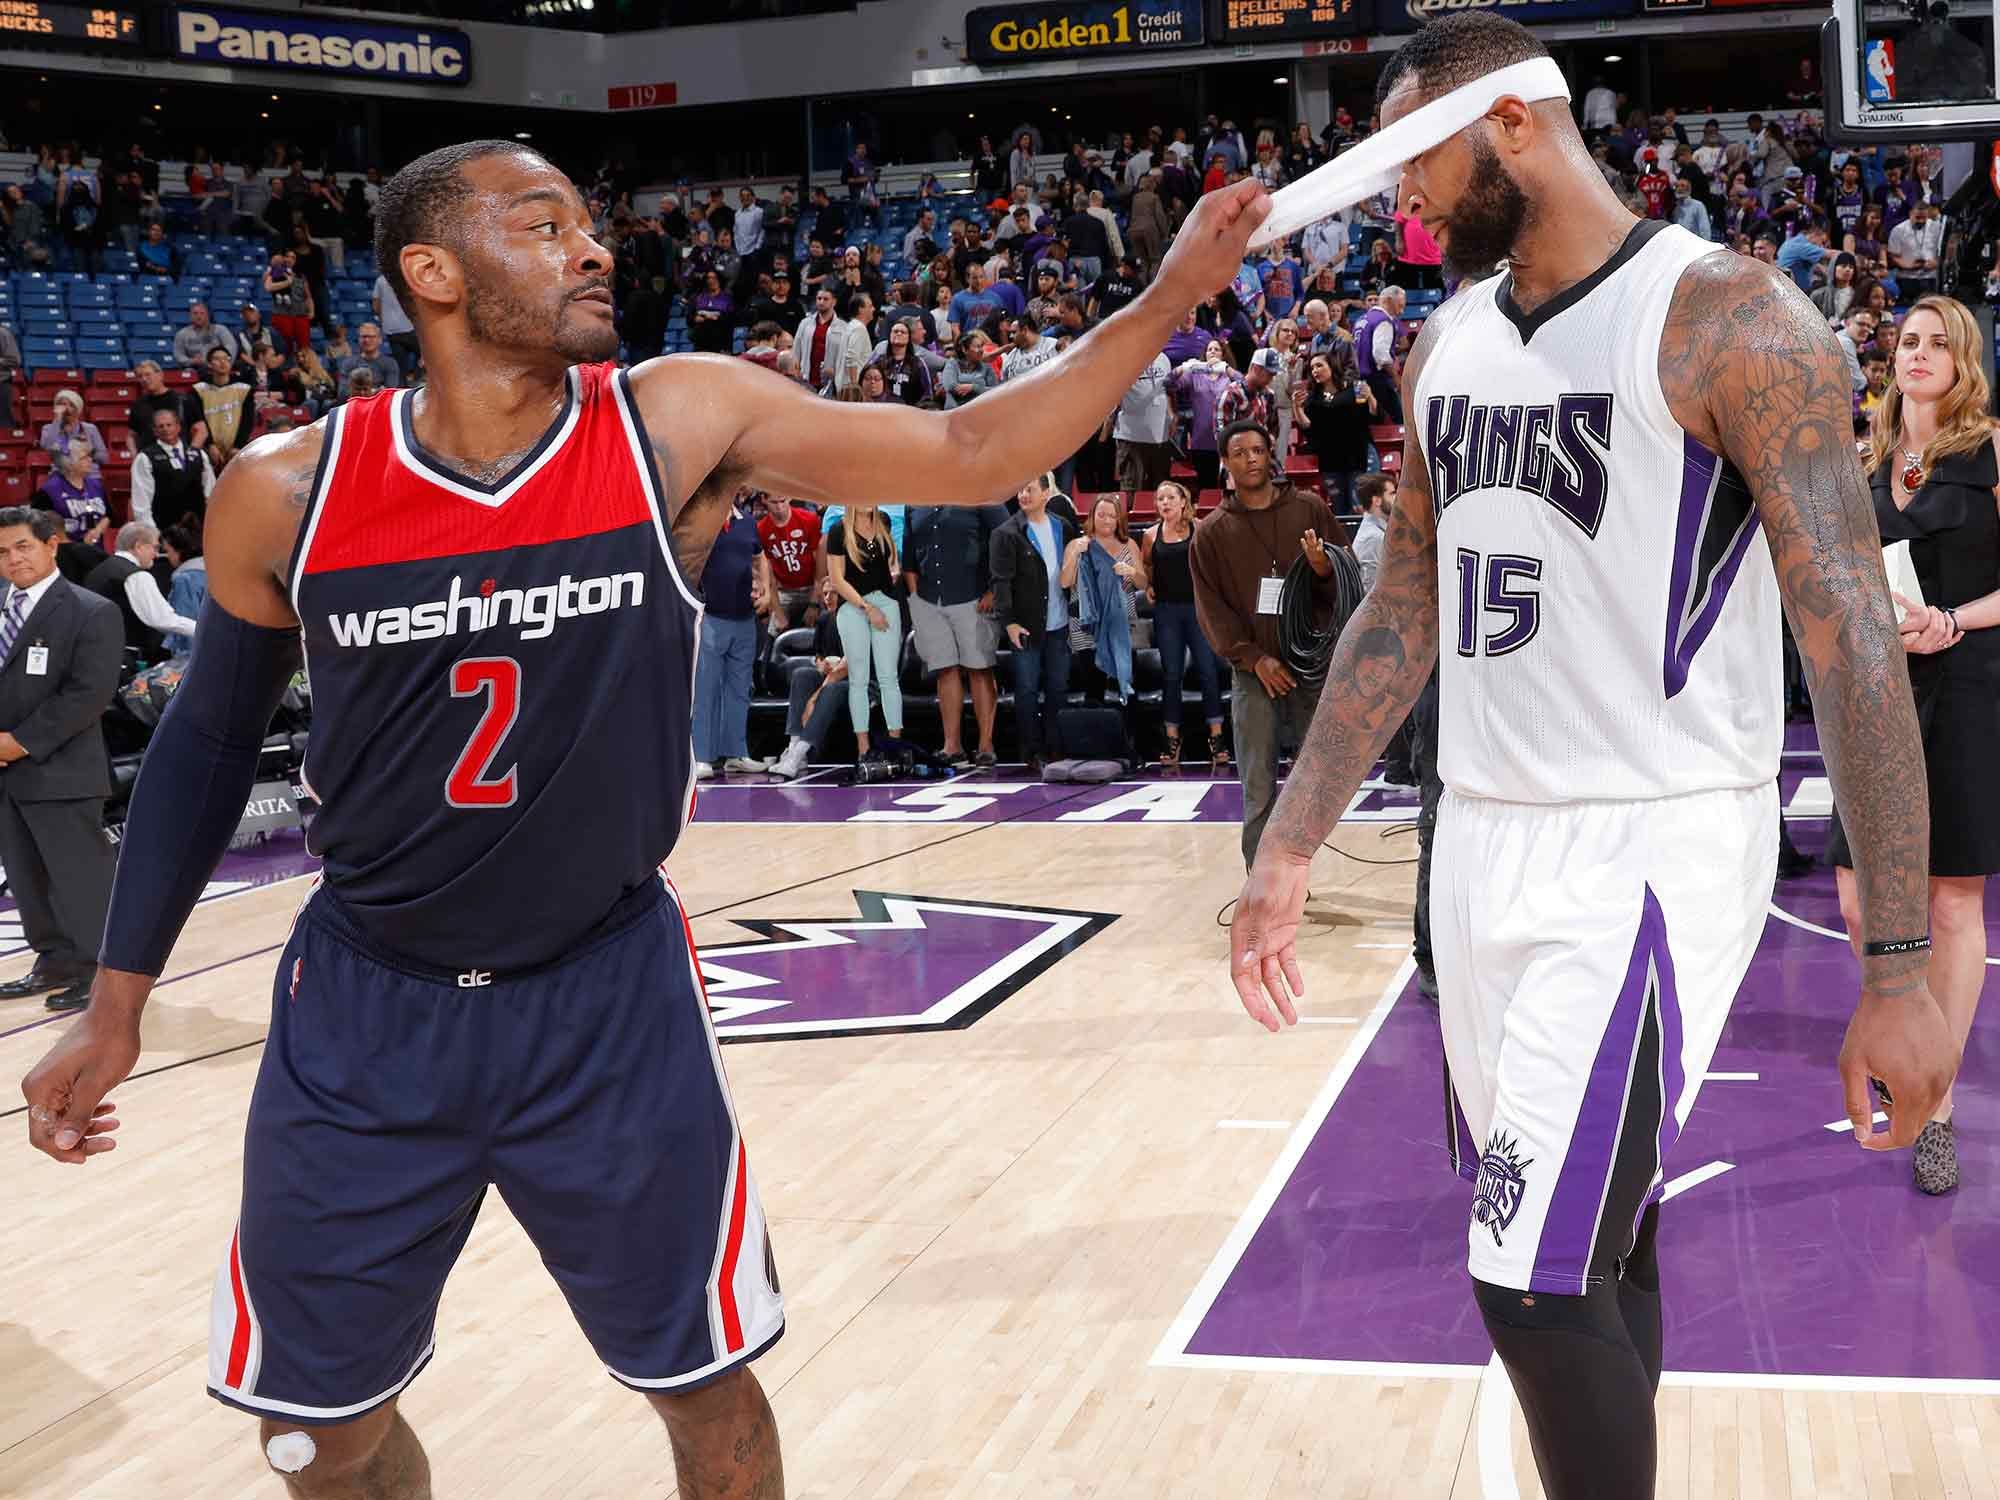 John Wall and DeMarcus Cousins